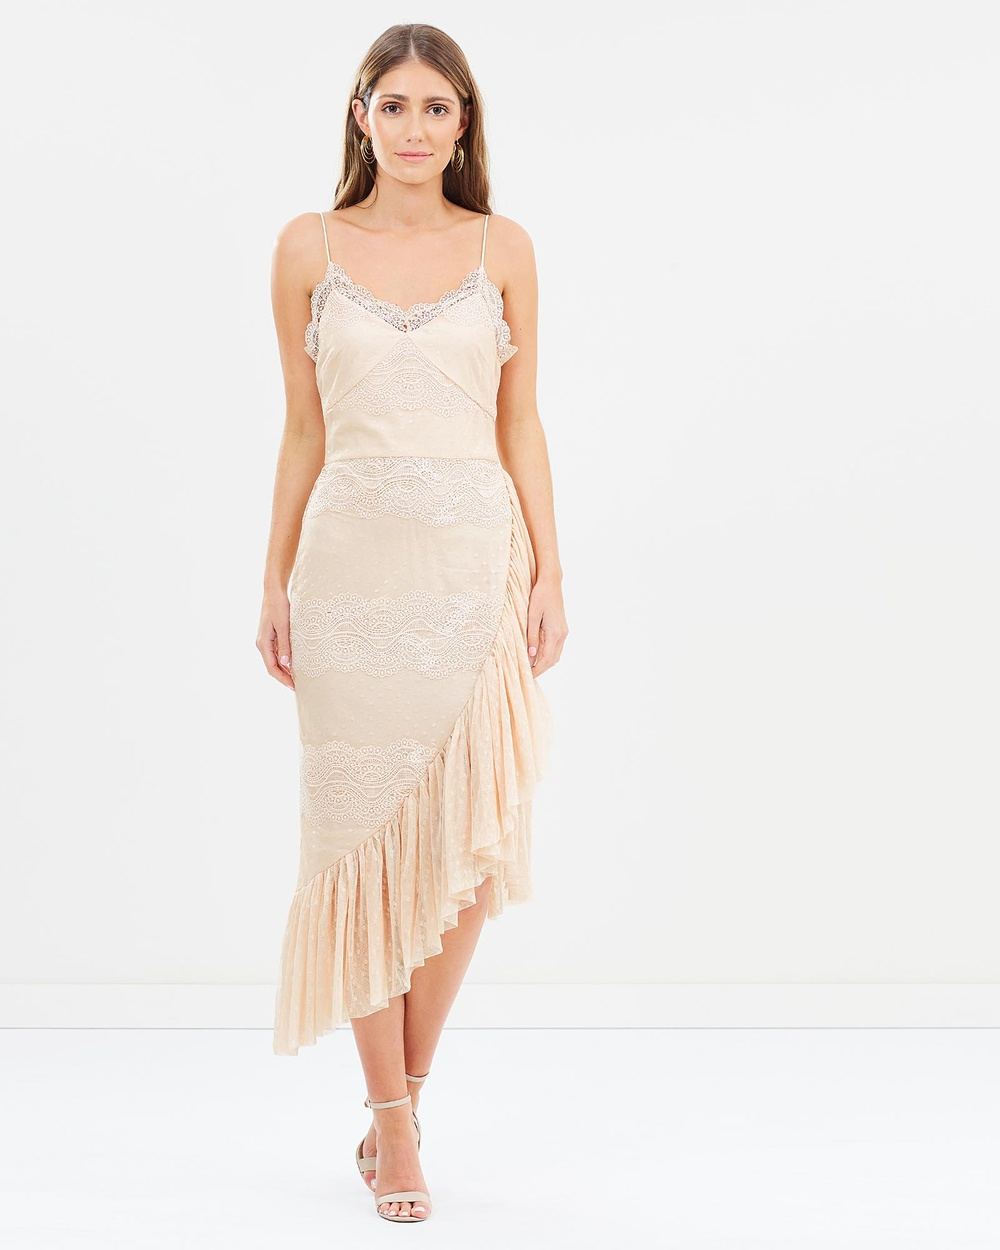 Cooper St Helena Drape Lace Dress Dresses Powder Pink Helena Drape Lace Dress